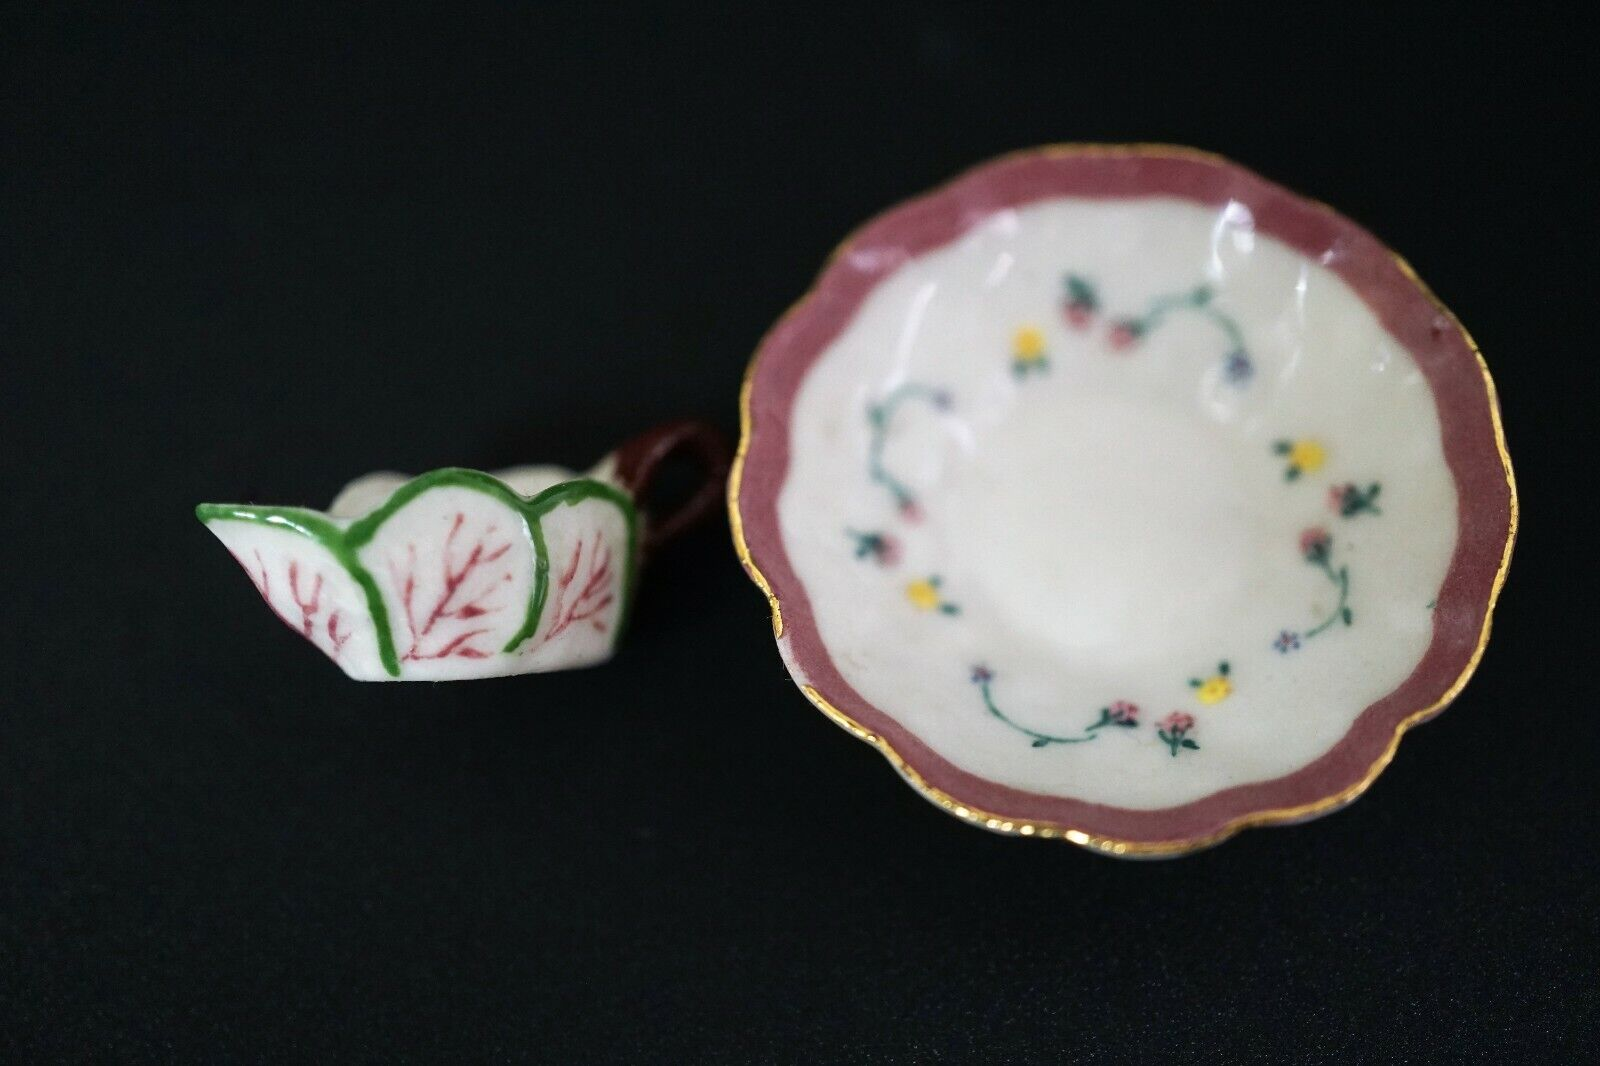 Miniature Dollhouse Hand Painted Porcelain Ron Benson Creamware Creamer and Bowl